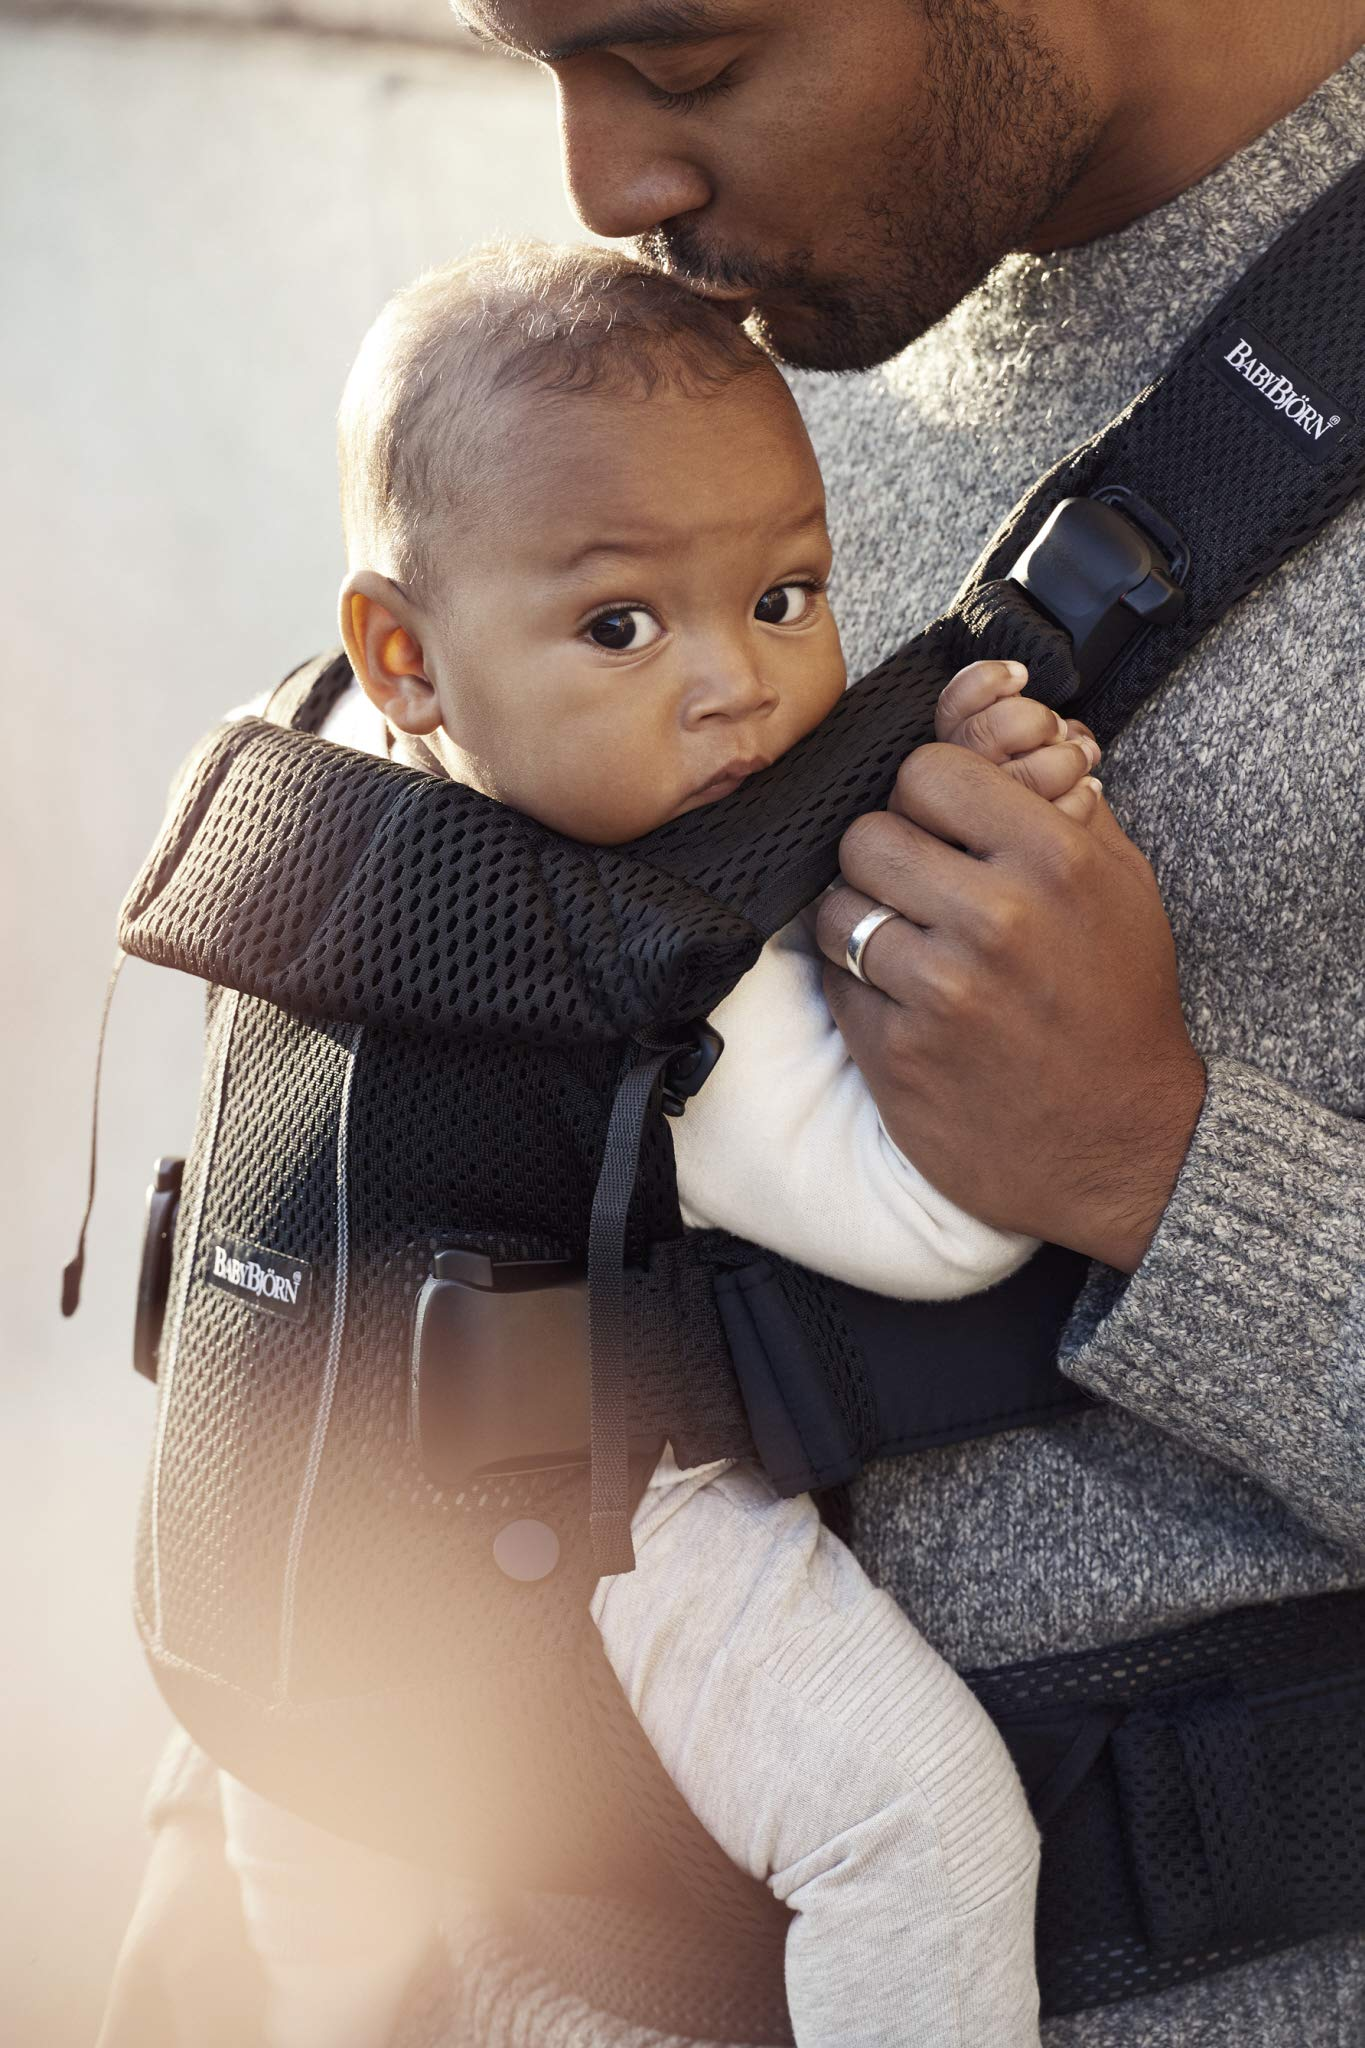 BABYBJÖRN Baby Carrier One Air, 3D Mesh, Black, 2018 Edition Baby Bjorn The latest version (2018) with soft and breathable mesh that dries quickly Ergonomic baby carrier with excellent support 4 carrying positions: facing in (two height positions), facing out or on your back 4